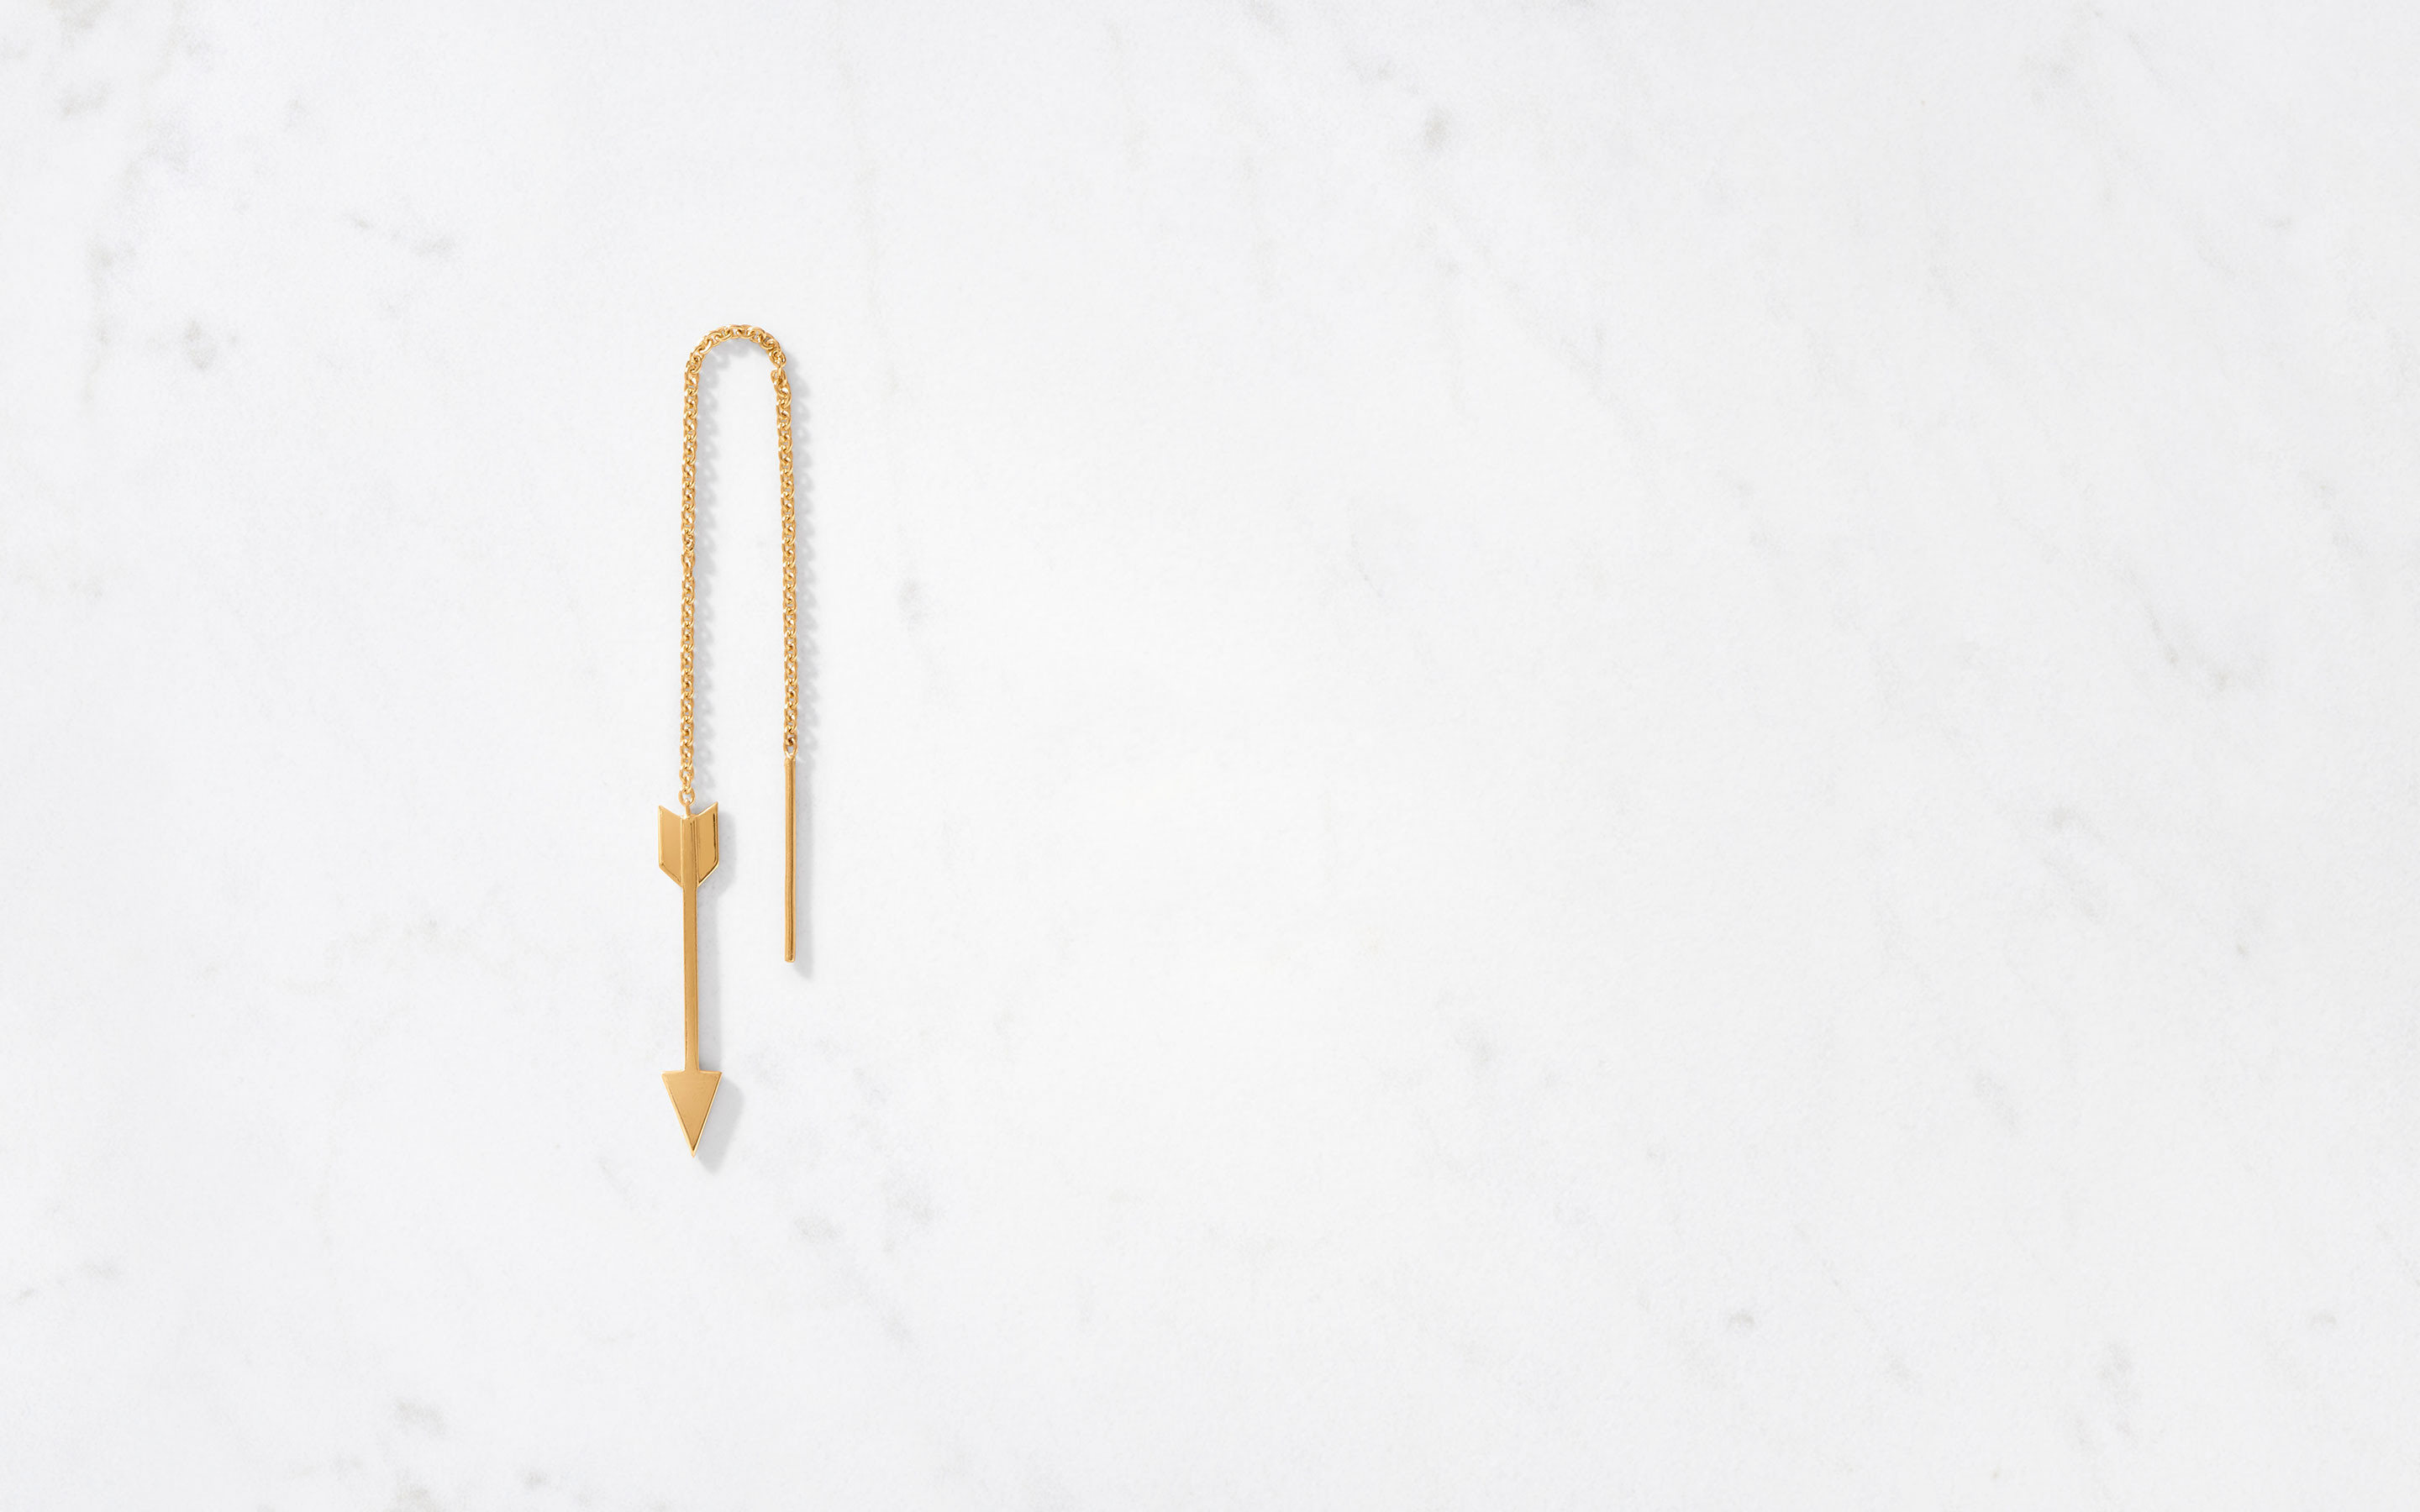 chic arrow-shaped threader earrings in 22 karat gold